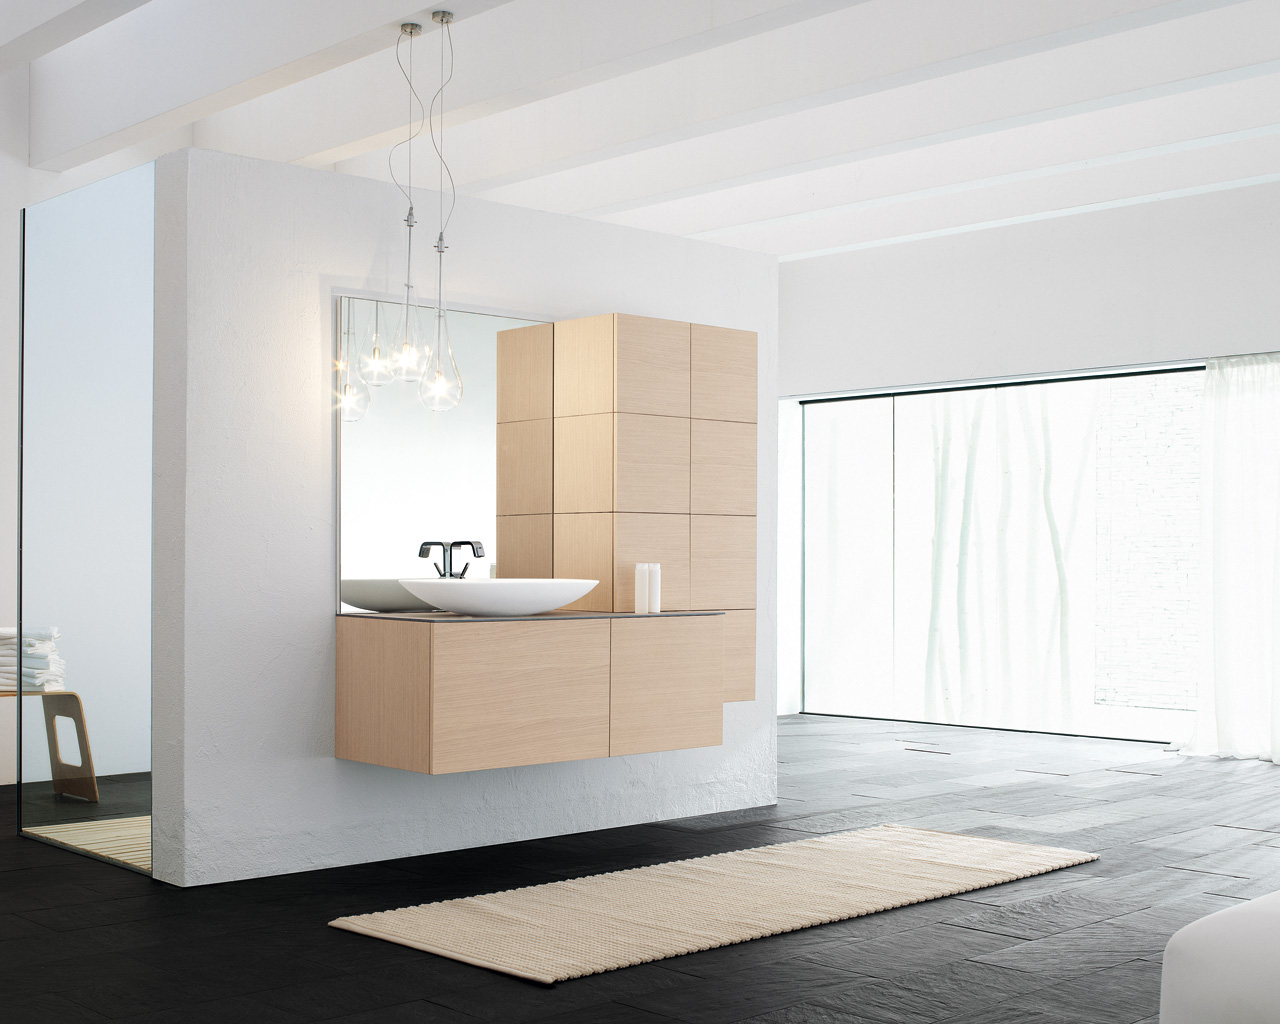 Bathroom Designs by ARLEX | Bathroom Designs, Featured, Italy